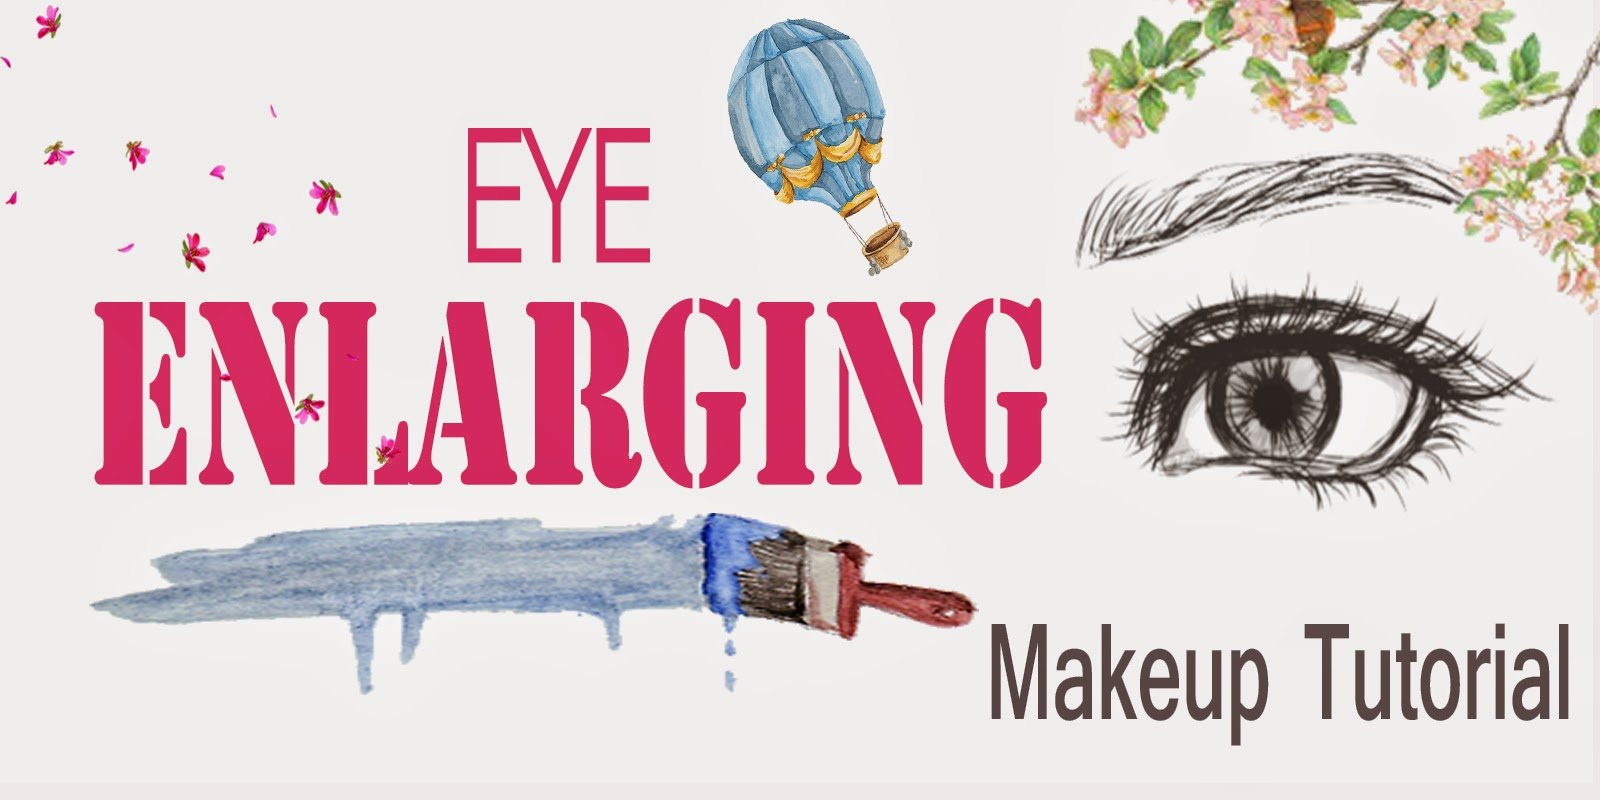 Eye Enlarging Makeup Tutorial - The Natural Look